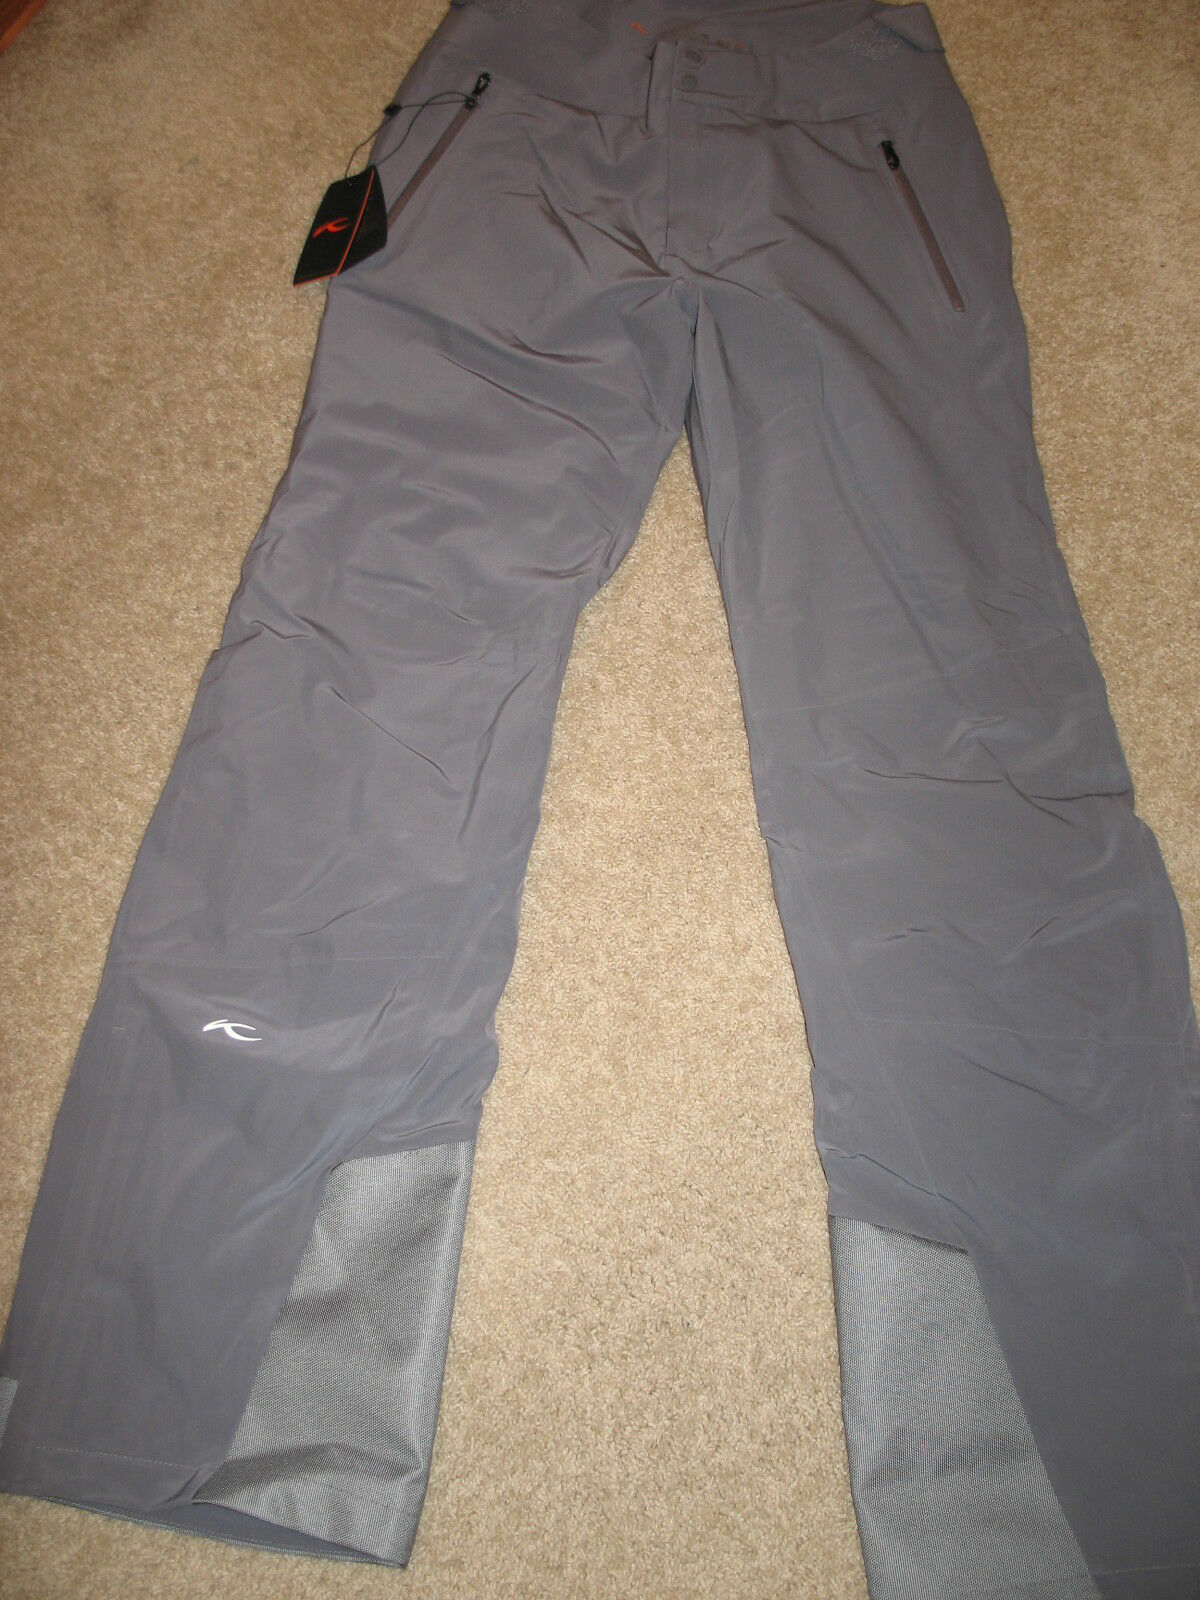 KJUS  Formula Pro Ski Pants Waterproof,  Insulated (For Men).M(50 Long).G .NWT.  outlet on sale